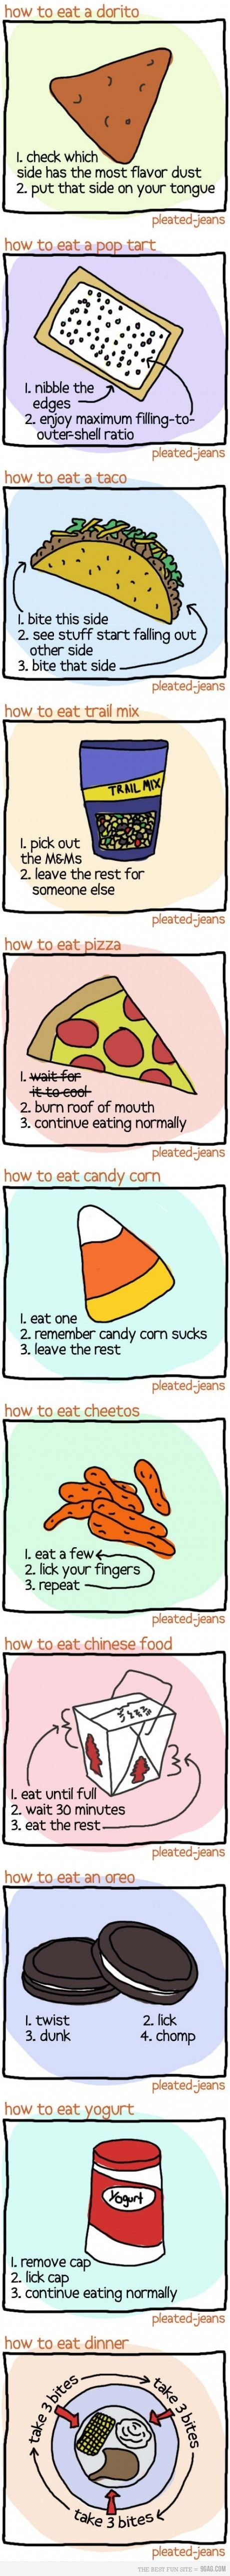 How to Eat... So true, so funny!